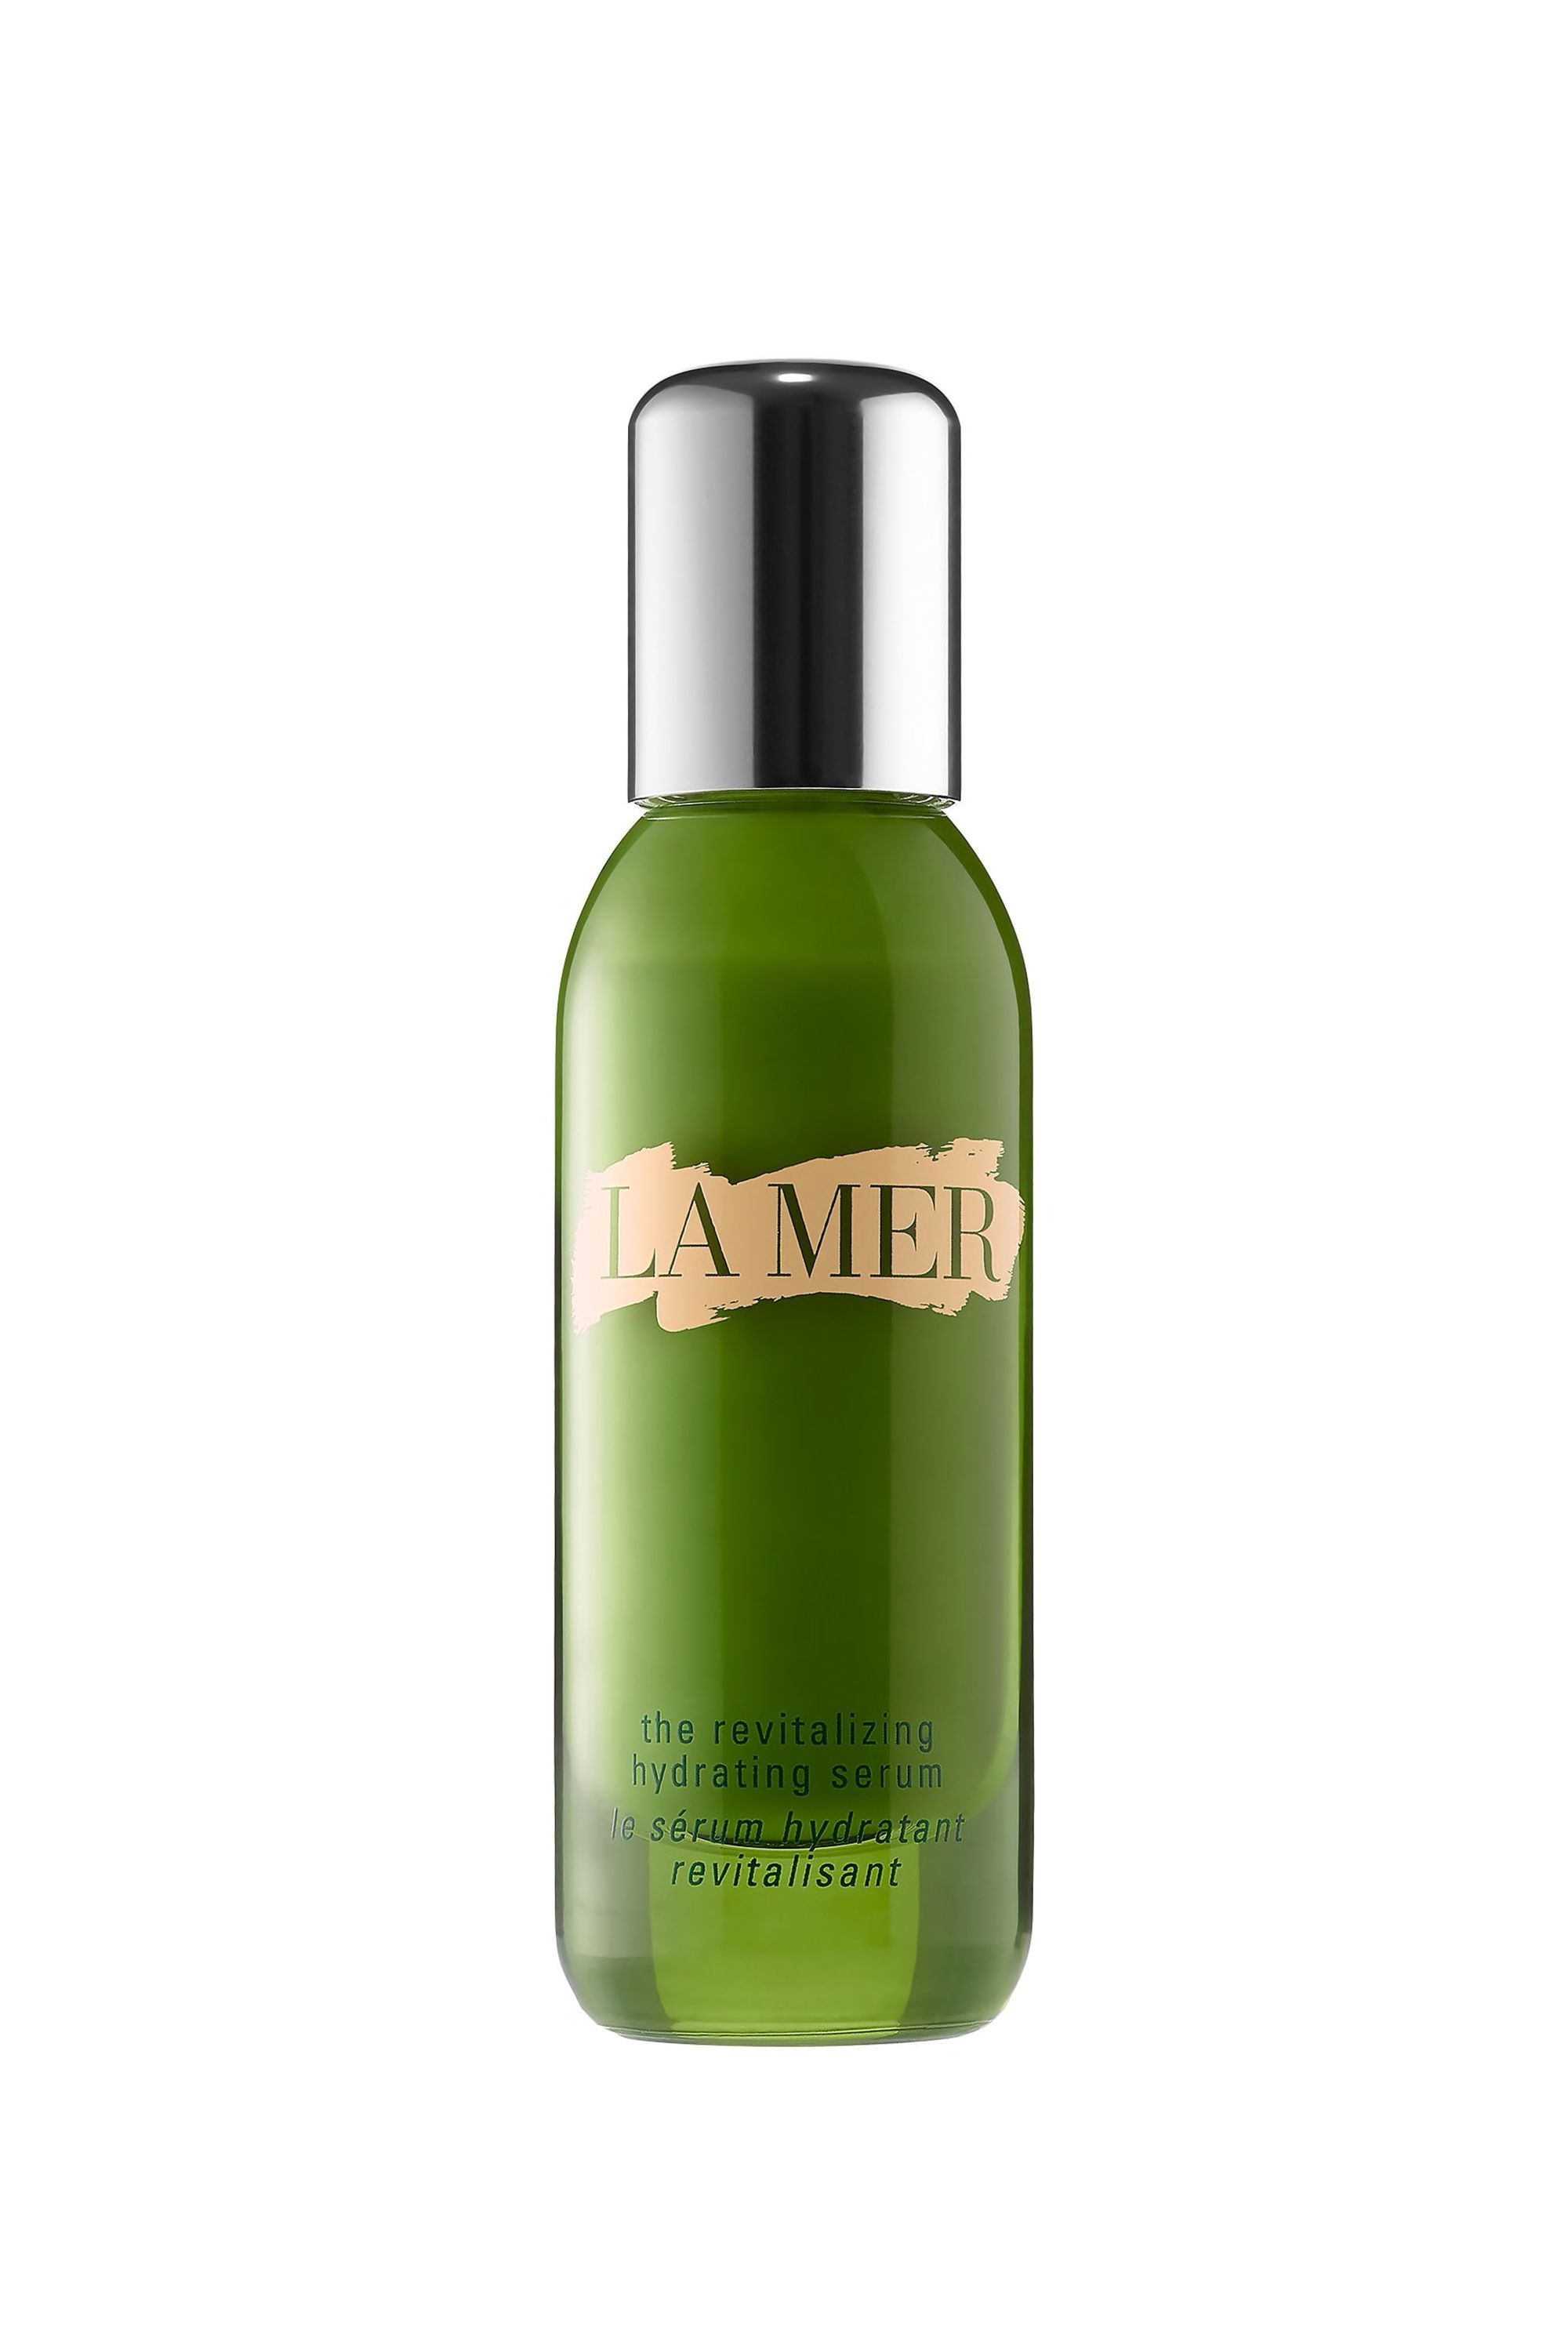 The Aquaman The Revitalizing Hydrating Serum La Mer neimanmarcus.com $205.00 SHOP NOW When tall drinks of water and a constantly running humidifier aren't doing the job for your parched skin, douse it with this seriously hydrating serum. Like La Mer's other offerings, this formula mines the power of the ocean to save your face (in this case drenching it with a nourishing algae blend).